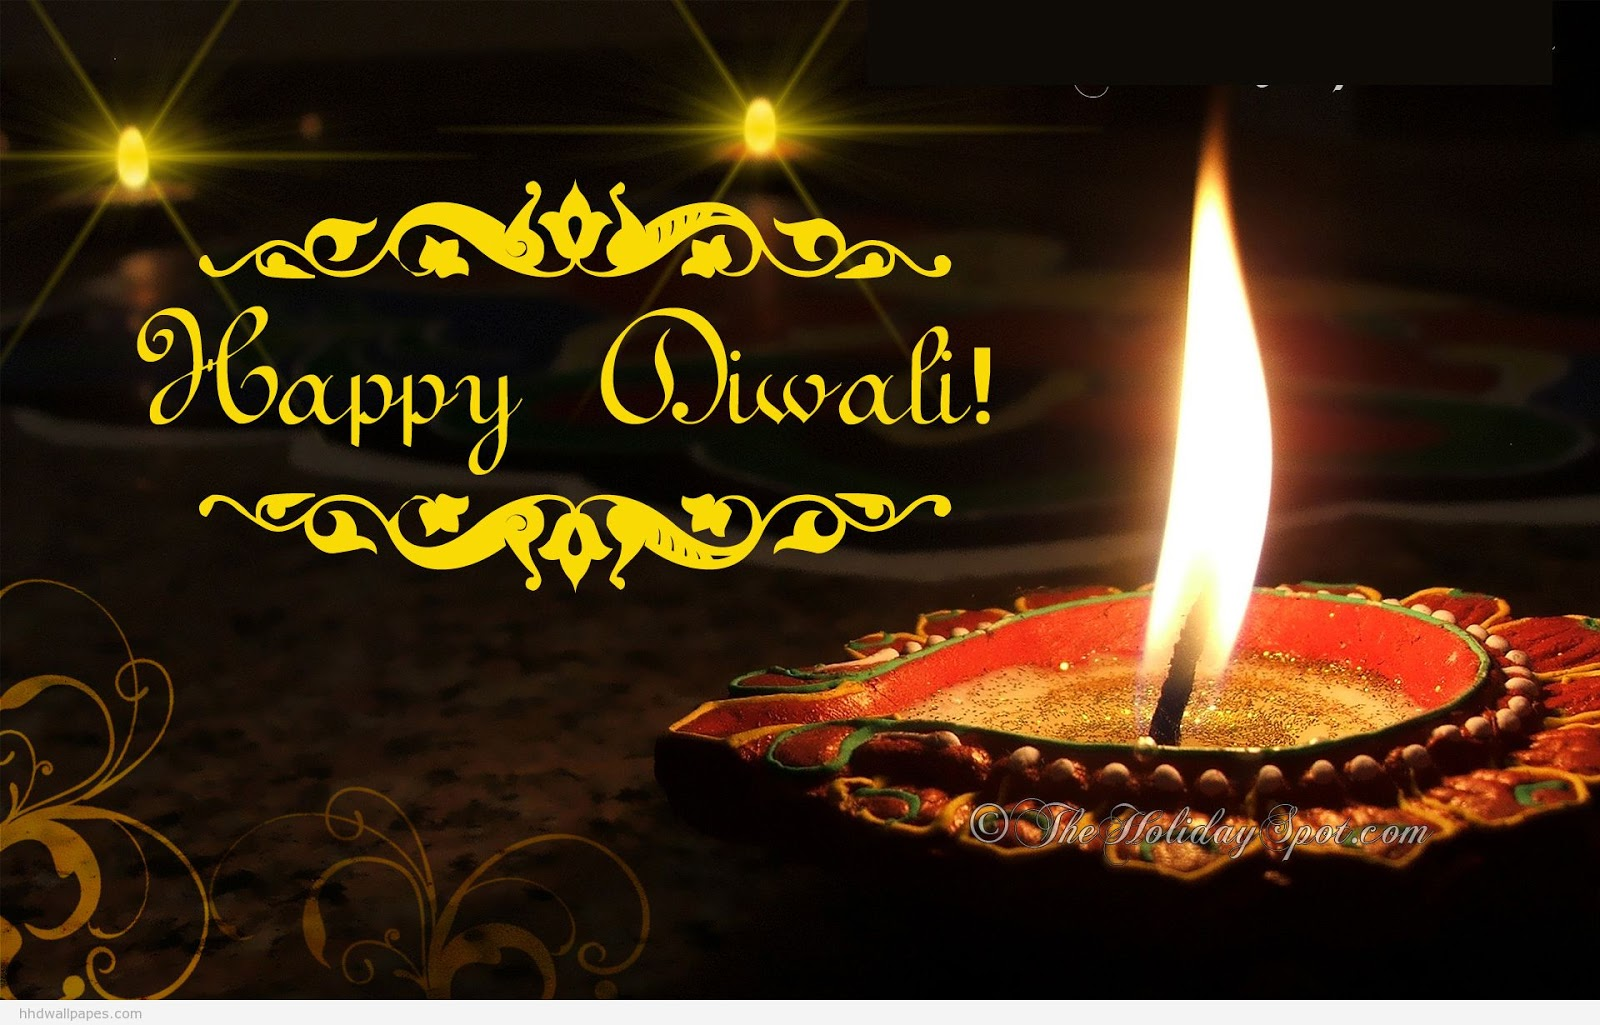 Happy diwali pictures images cards wallpapers cliparts greetings happy2bdiwali2b20162bwallpapers2bpic2bcollections2b 2bbest kristyandbryce Image collections